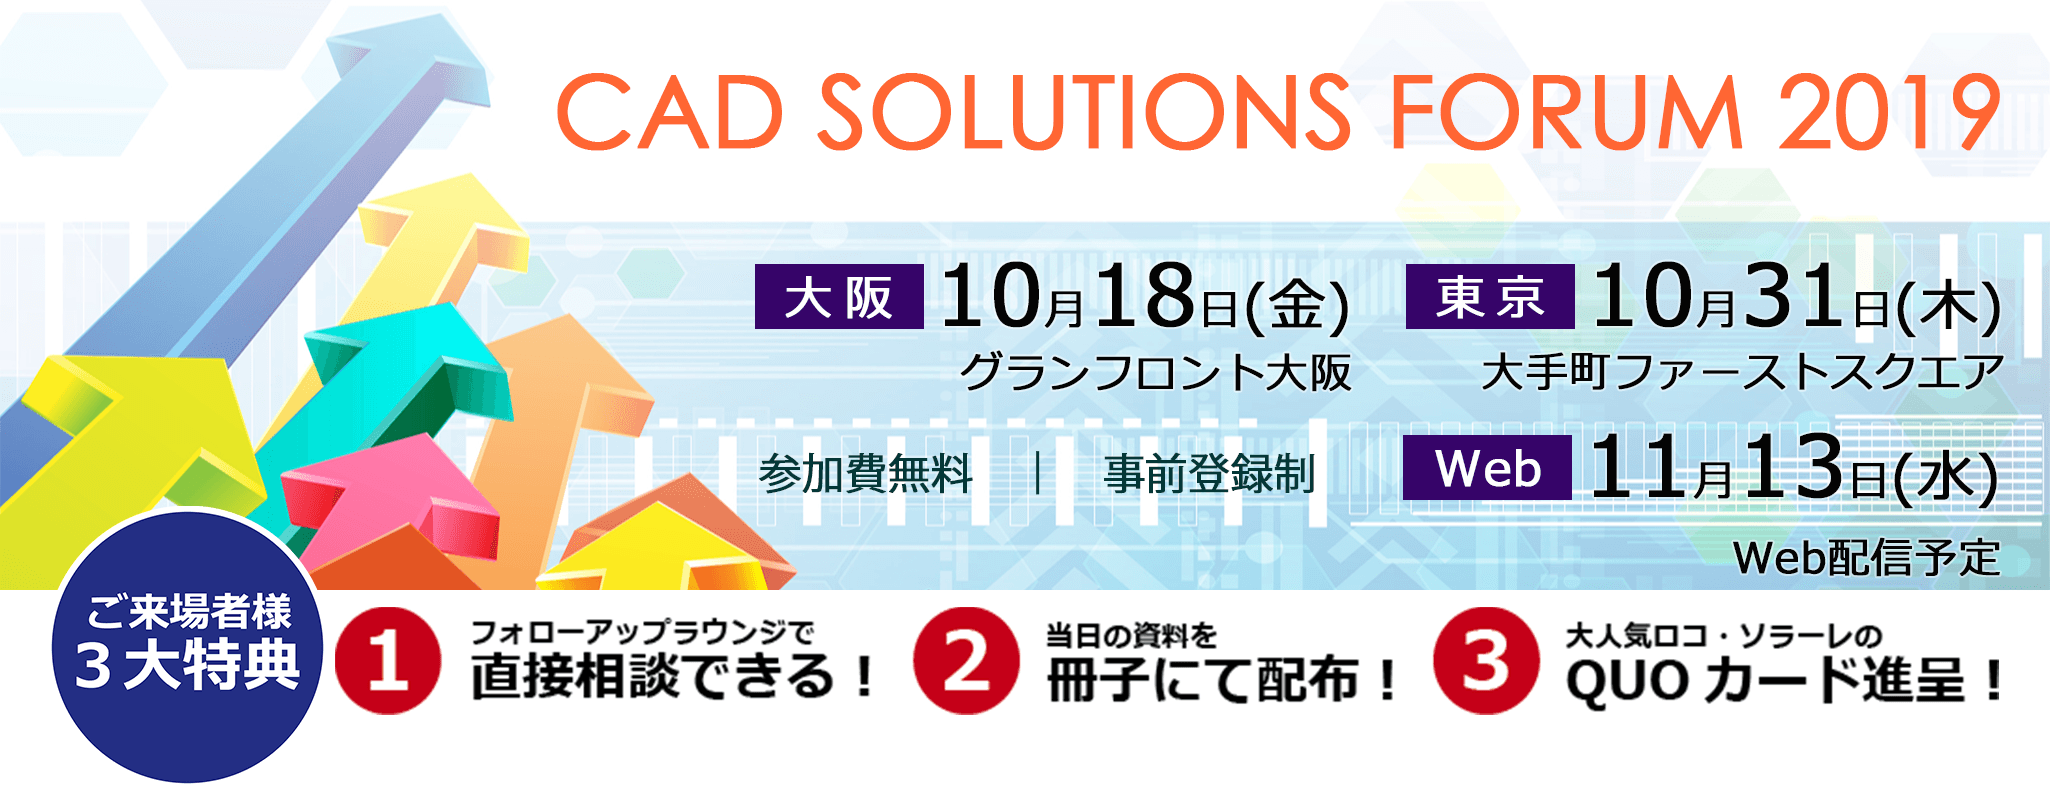 CAD SOLUTIONS FORUM 2019 Image